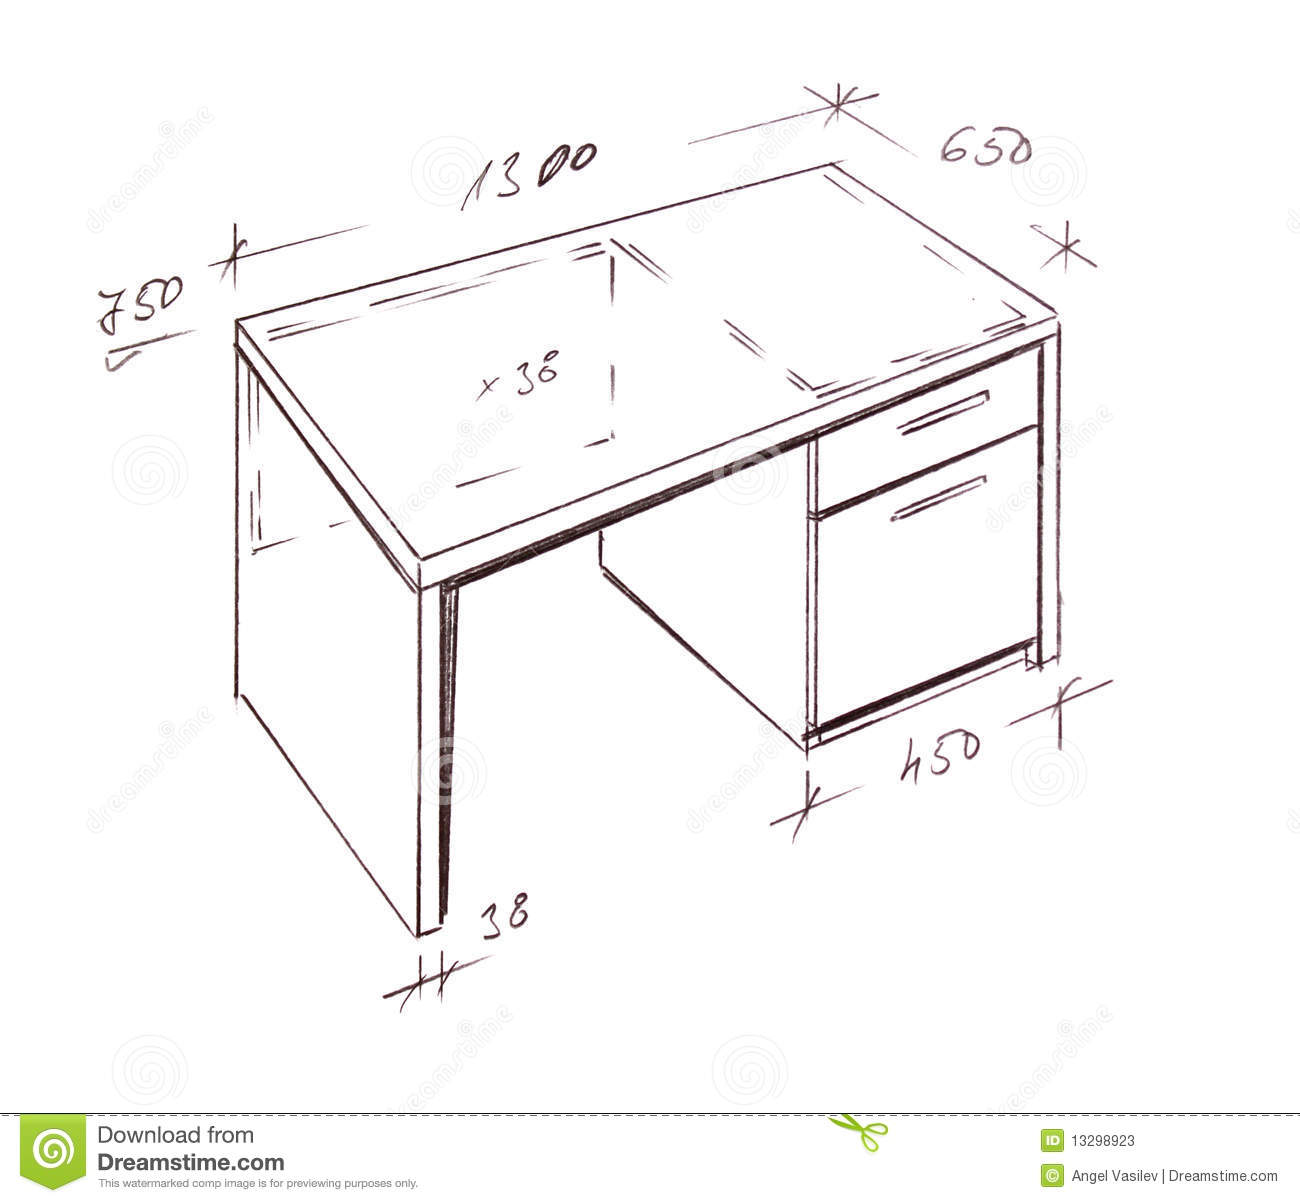 Modern Interior Design Desk Freehand Drawing Stock Photos  : thidOIPpZzQYjuTs0le0TdCyiW0bwEsEVampw230amph170amprs1amppclddddddamppid1 from www.dreamstime.com size 1300 x 1203 jpeg 87kB